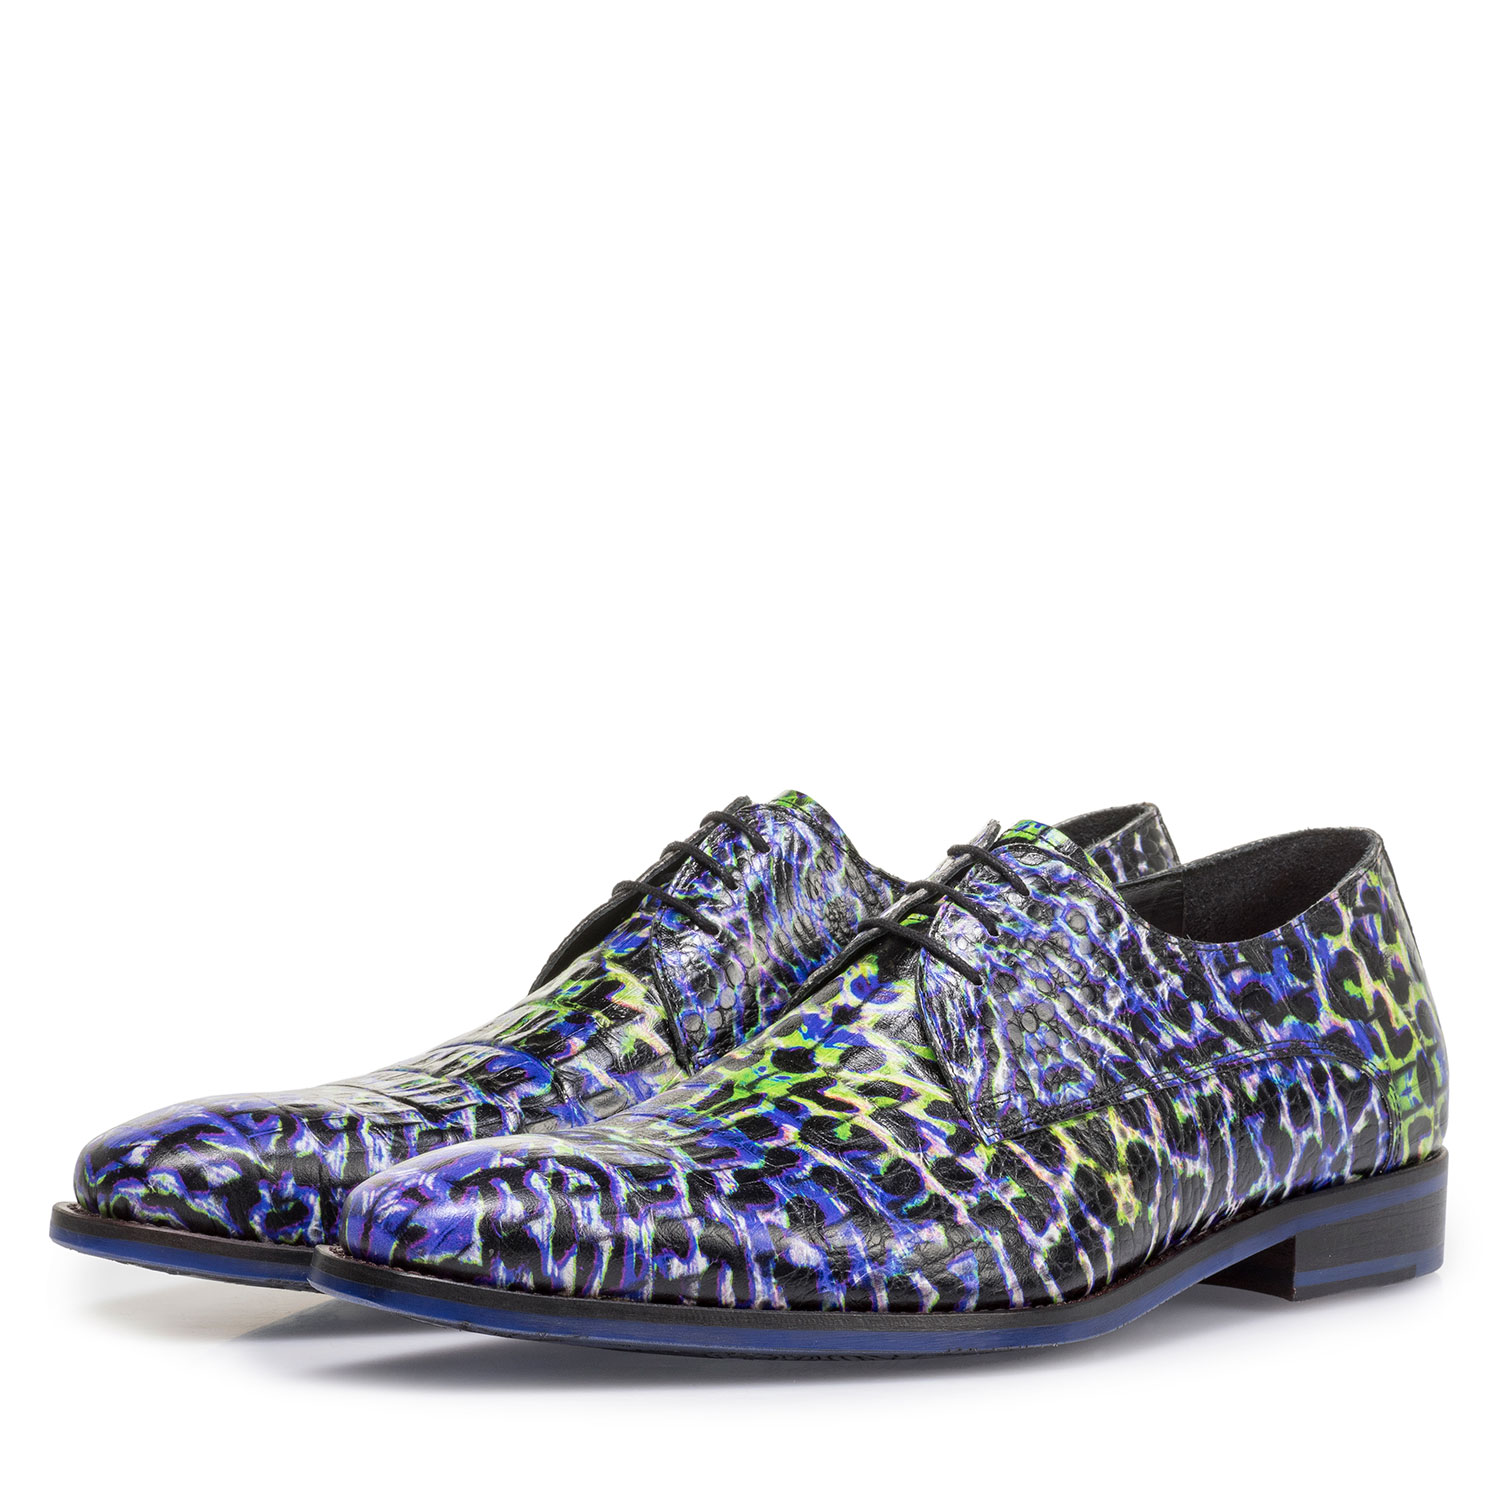 18204/03 - Premium blue lace shoe with a croco print